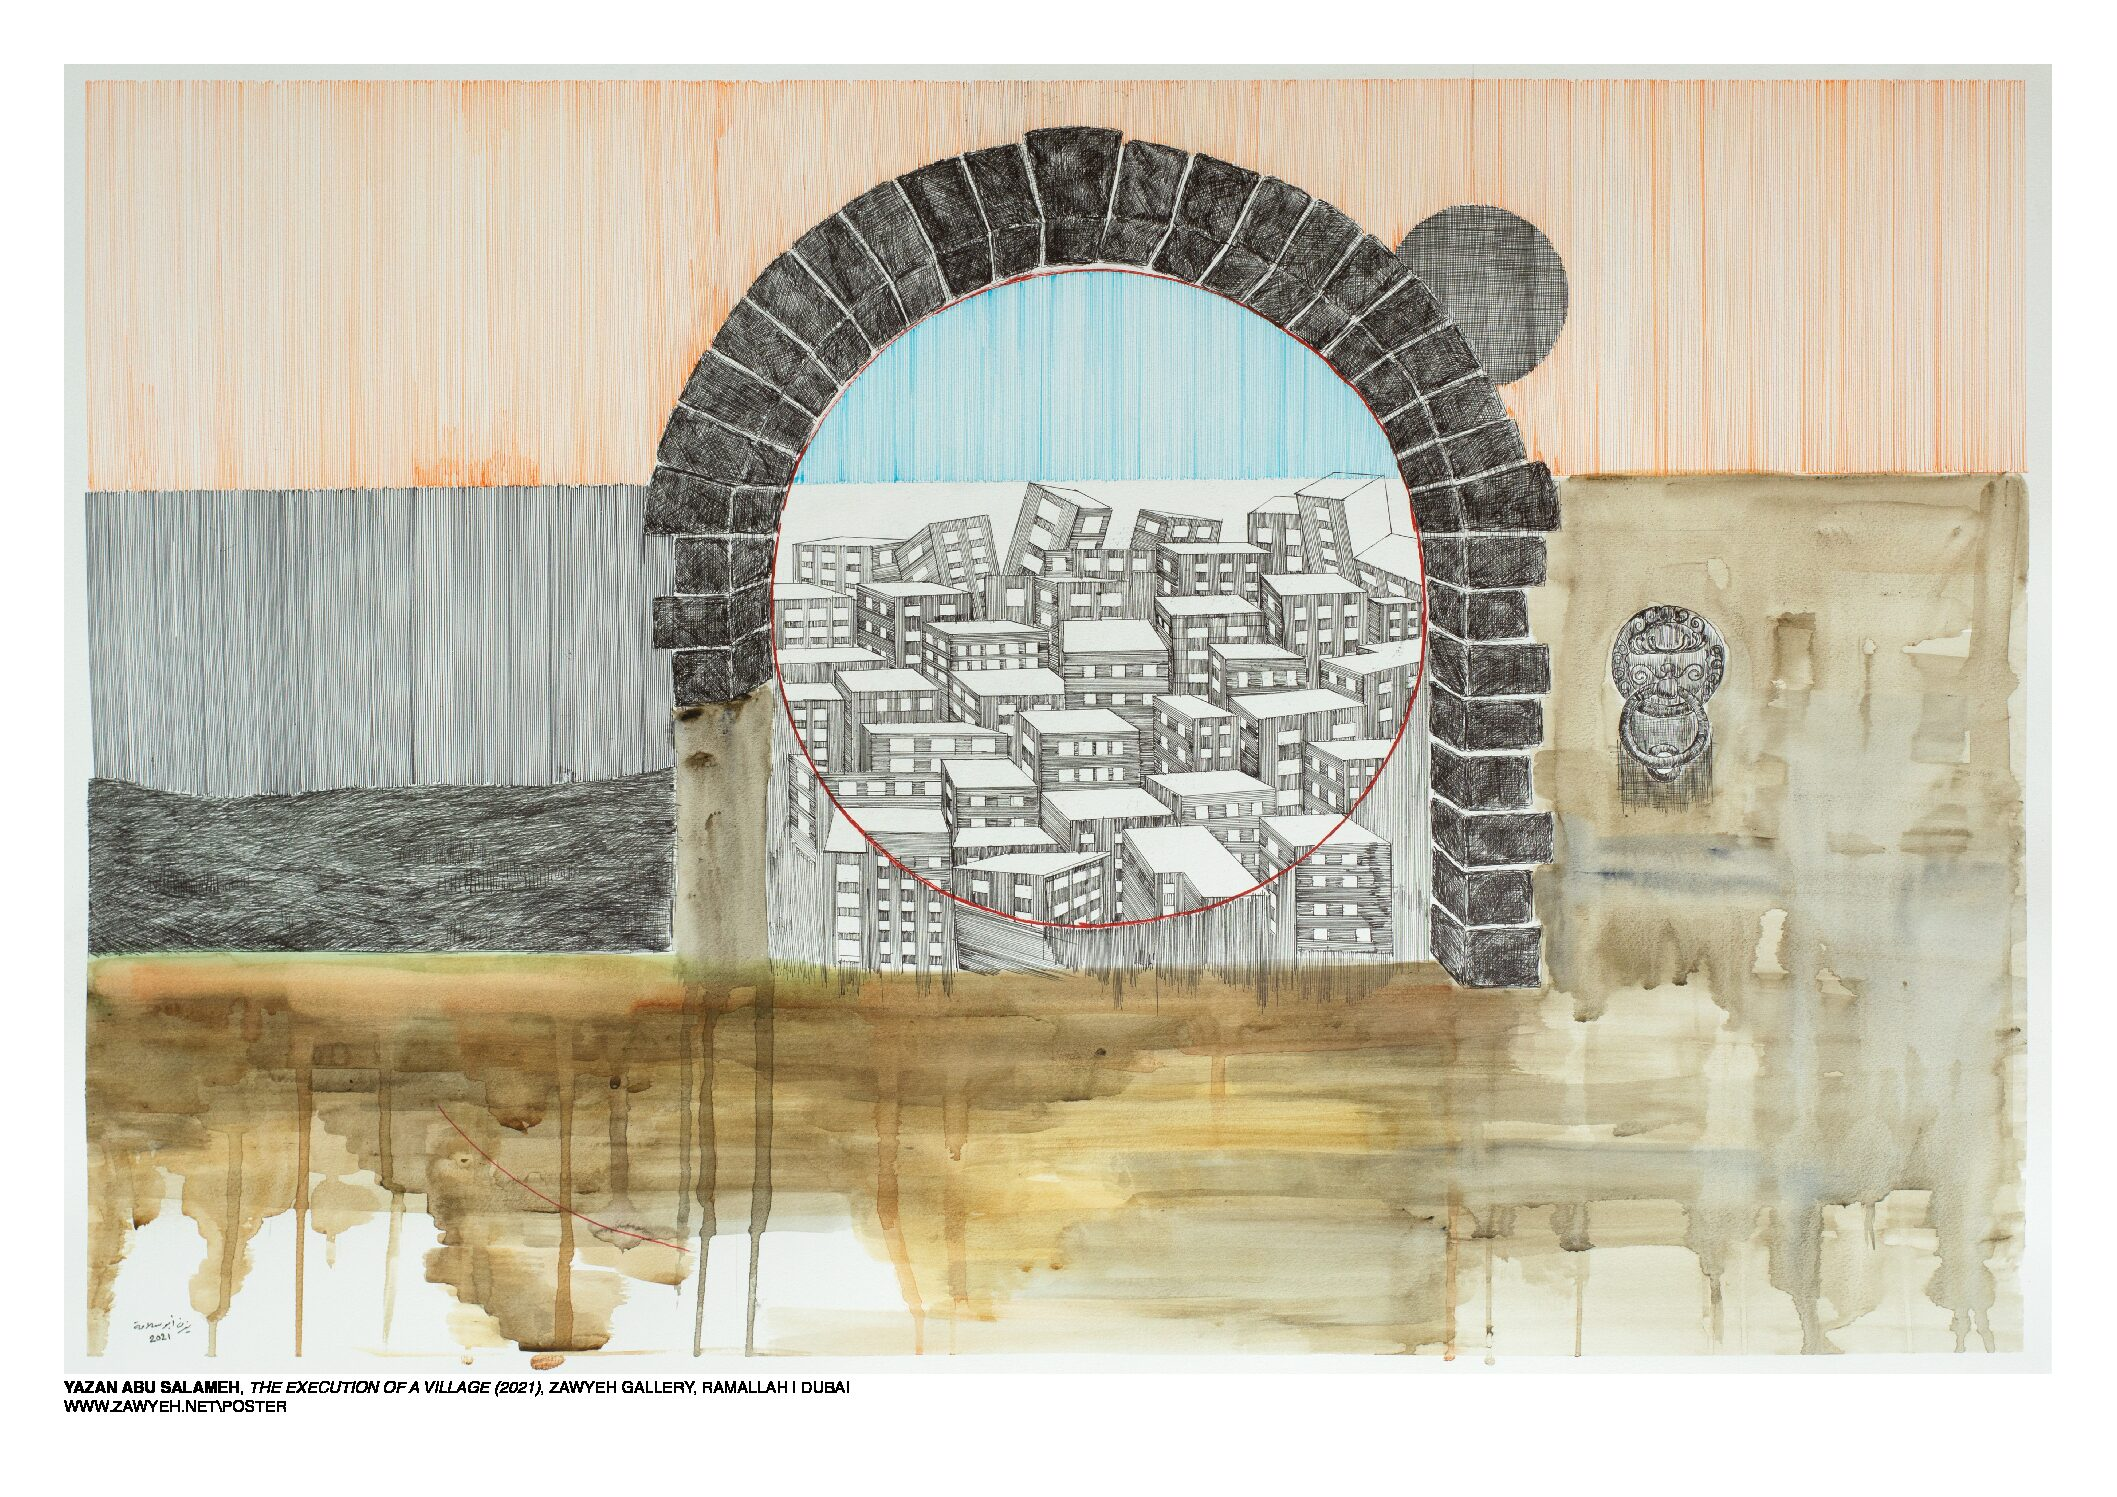 The Execution of a Village by Yazan Abu Salameh